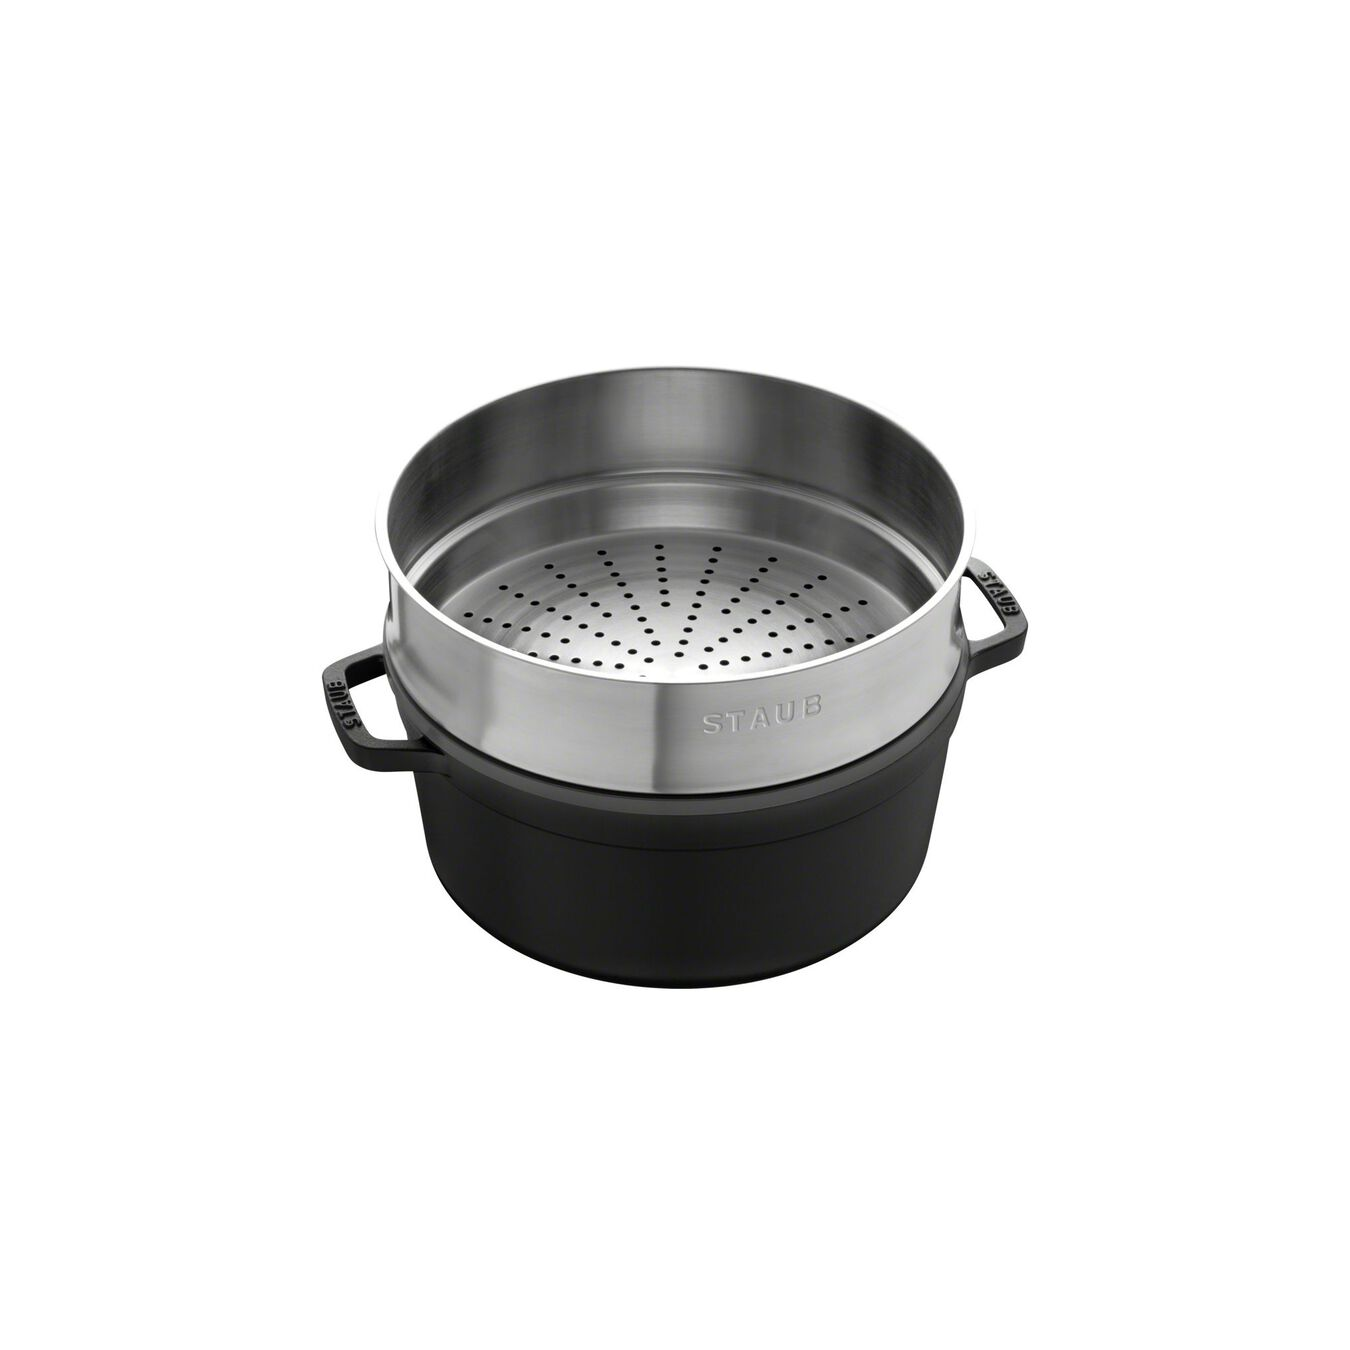 5,25 l Cast iron round Faitout with steamer, Black,,large 2